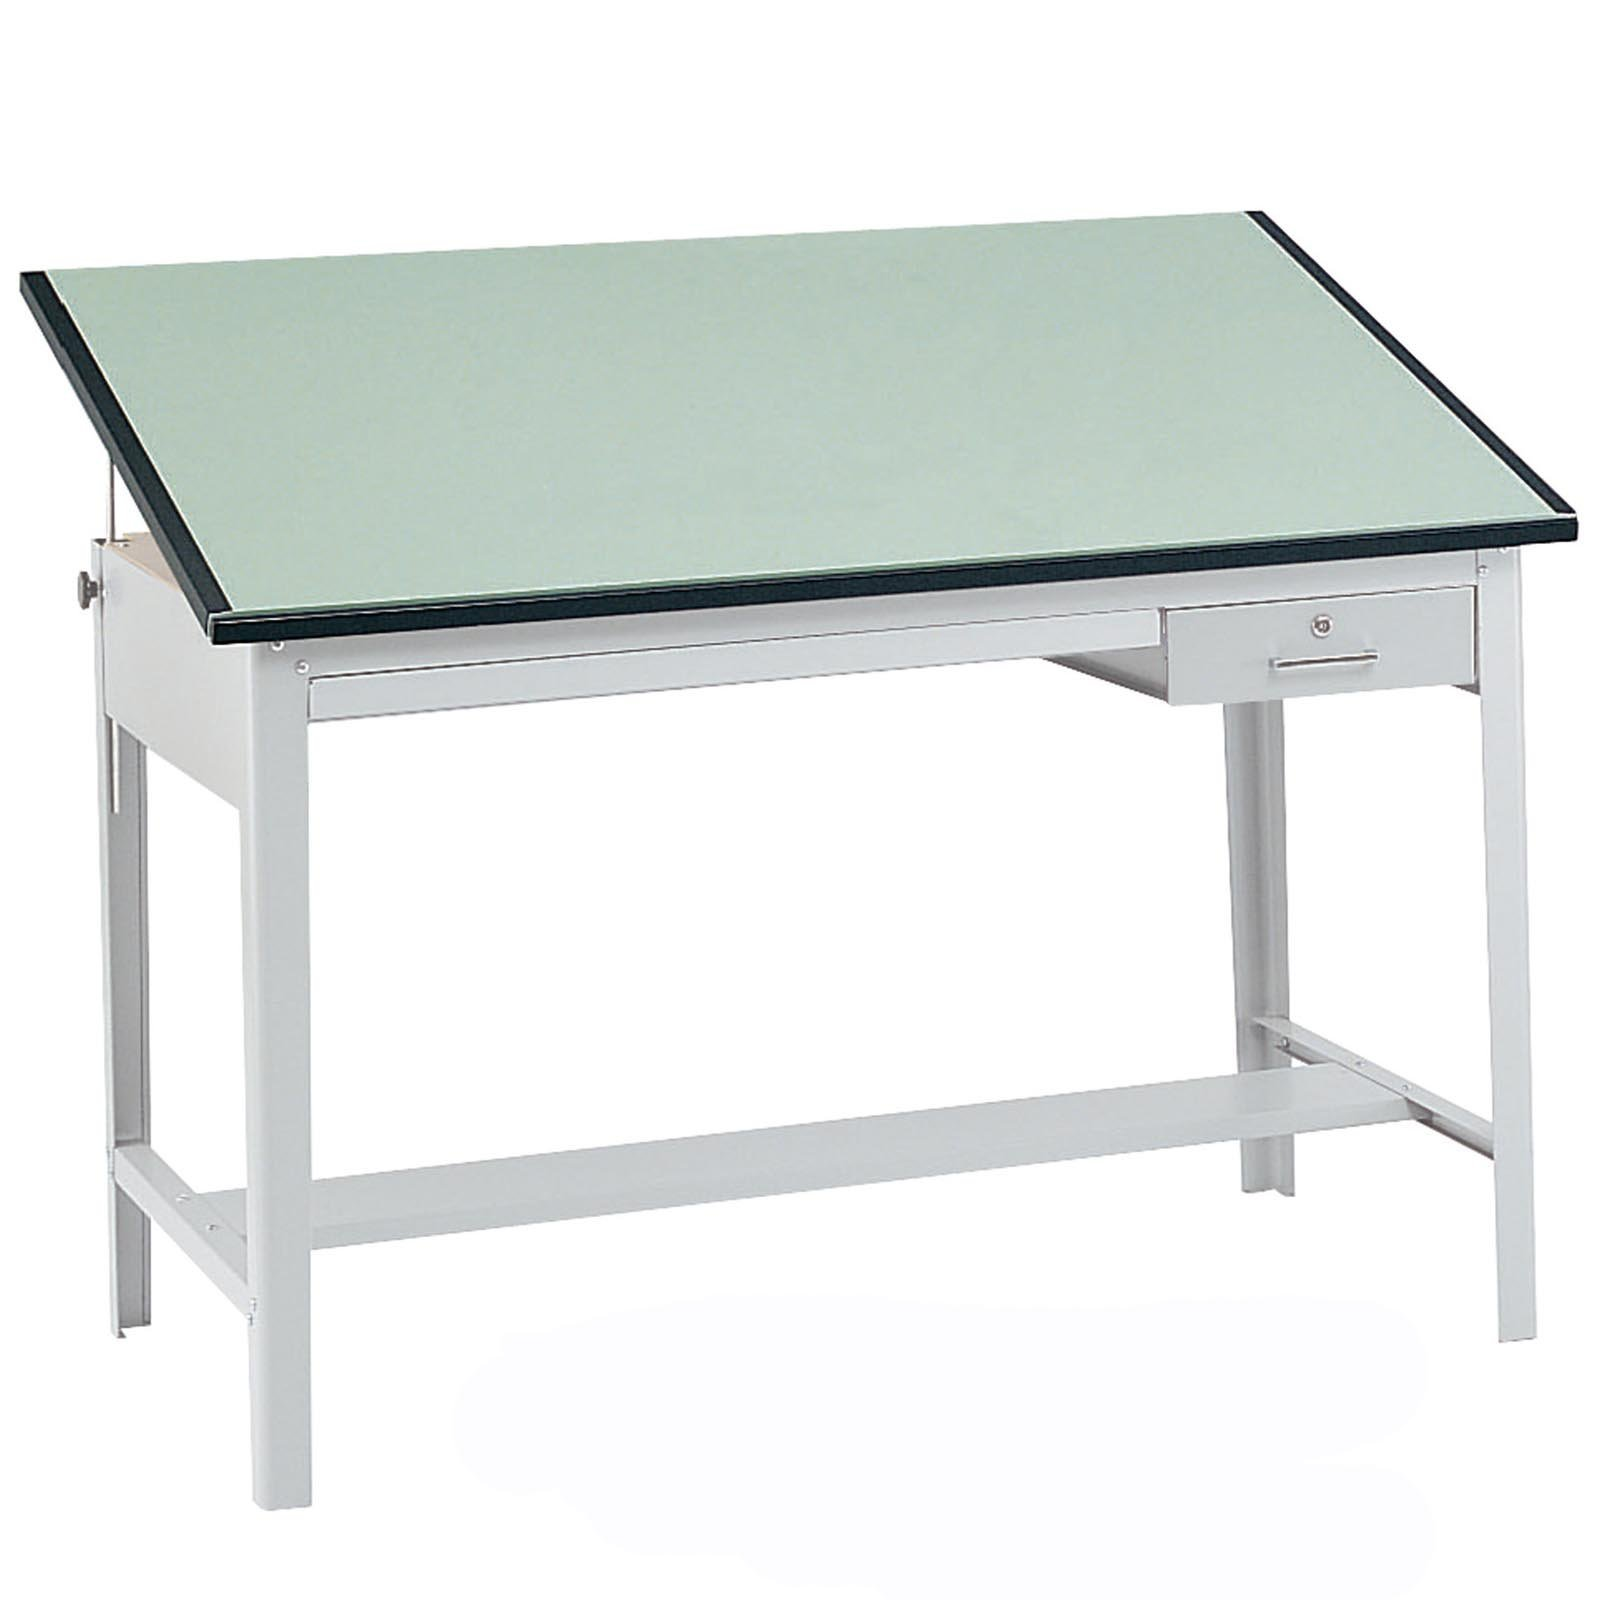 Adjustable Height Drafting Table Adjustable Drafting Table Benefits